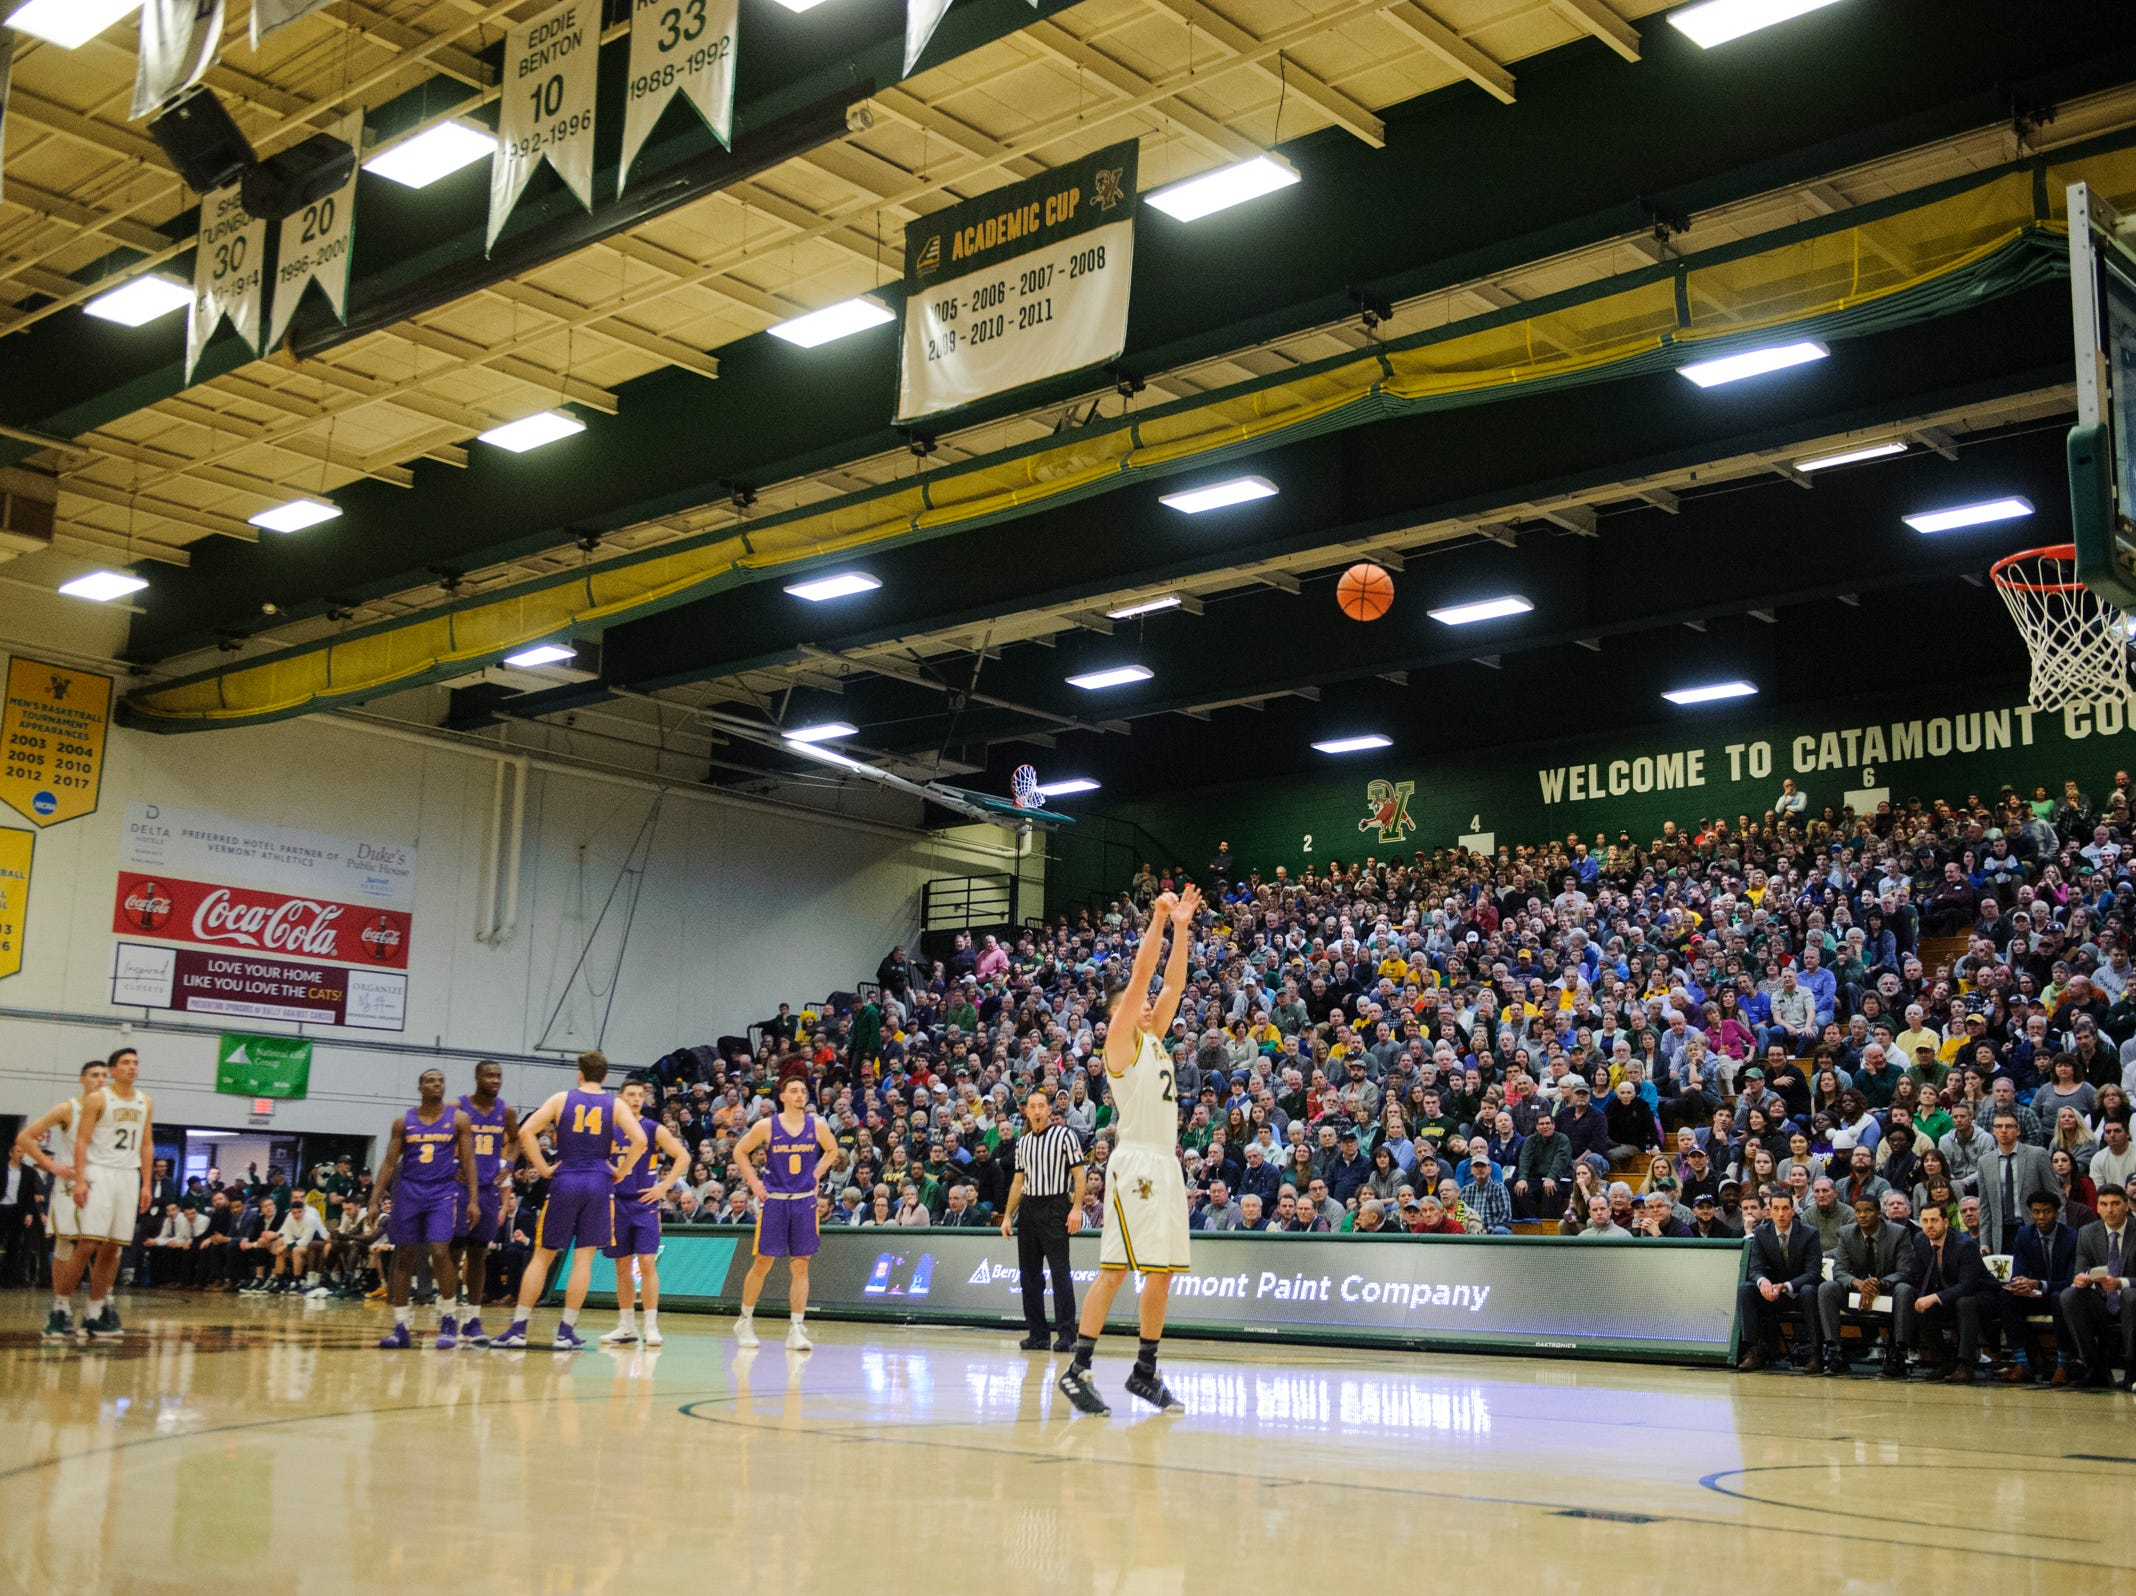 Vermont guard Ernie Duncan (20) shoots a free throw after a technical foul call on Albany head coach Will Brown during the men's basketball game between the Albany Great Danes and the Vermont Catamounts at Patrick Gym on Saturday February 9, 2019 in Burlington, Vermont.